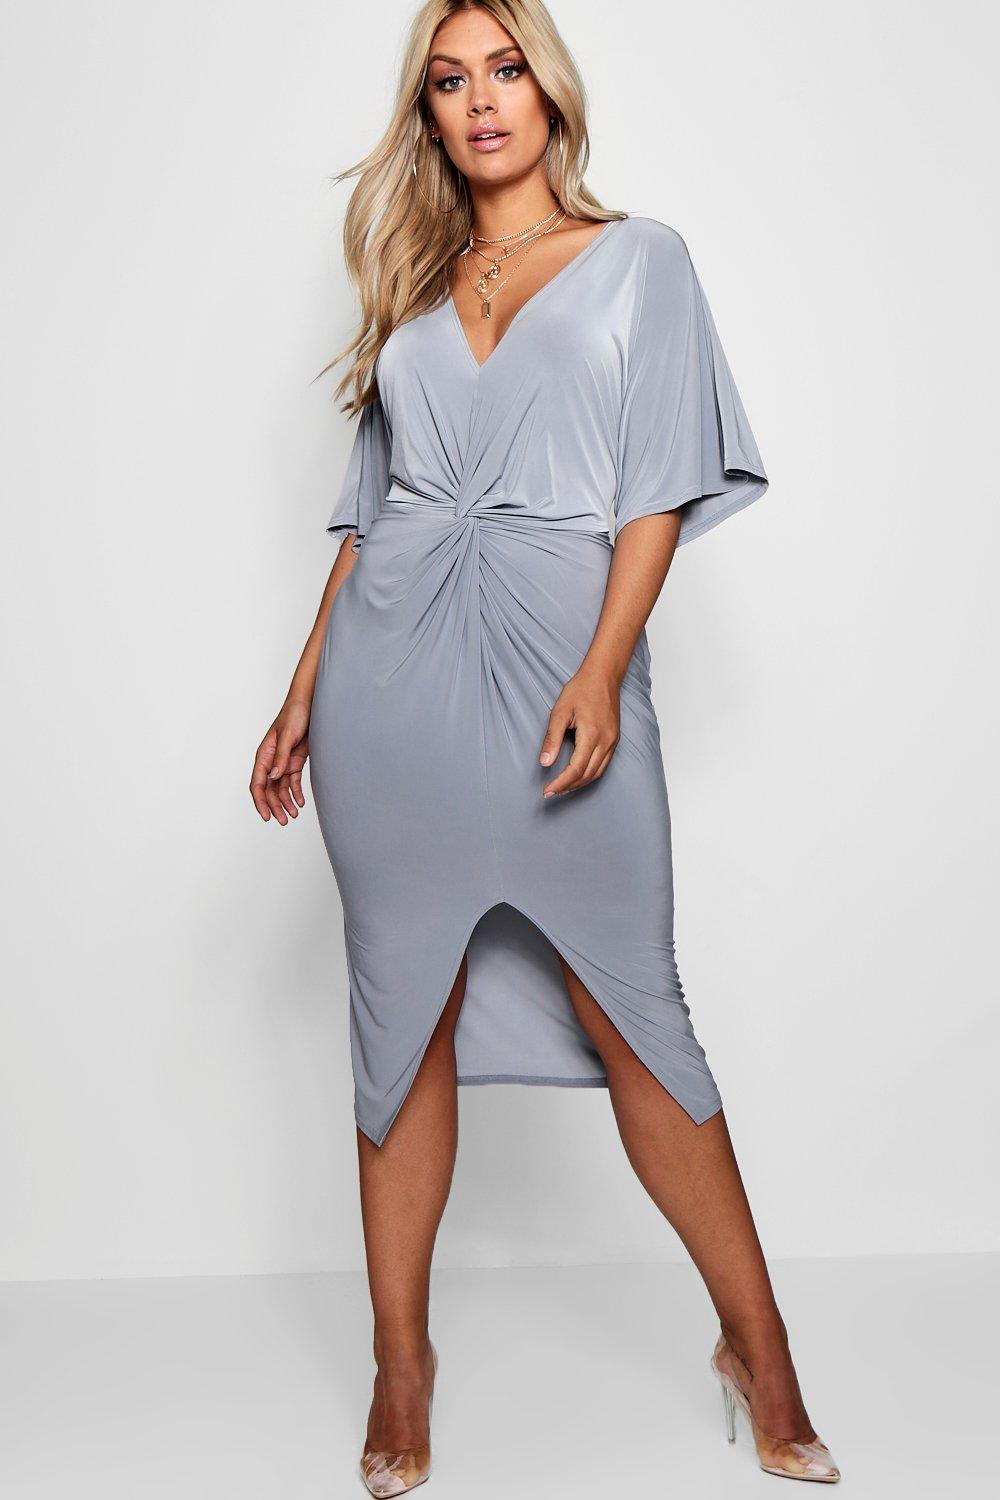 Boohoo Plus Slinky Twisted Kimono Sleeve Midi Dress in Gray - Lyst ad956f2f0